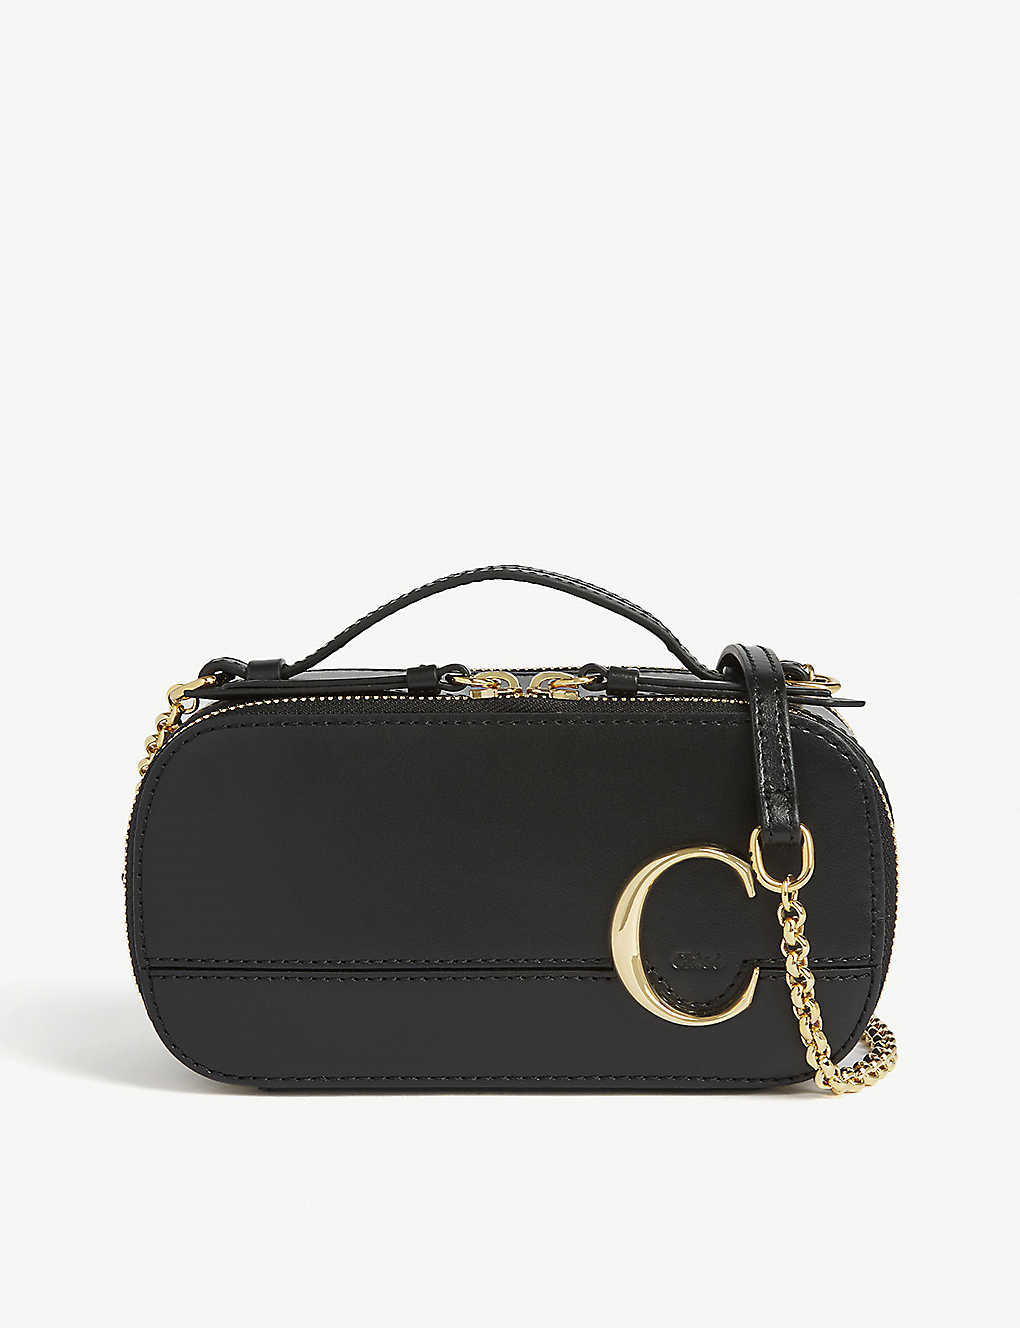 CHLOE: Chloé C mini leather shoulder bag